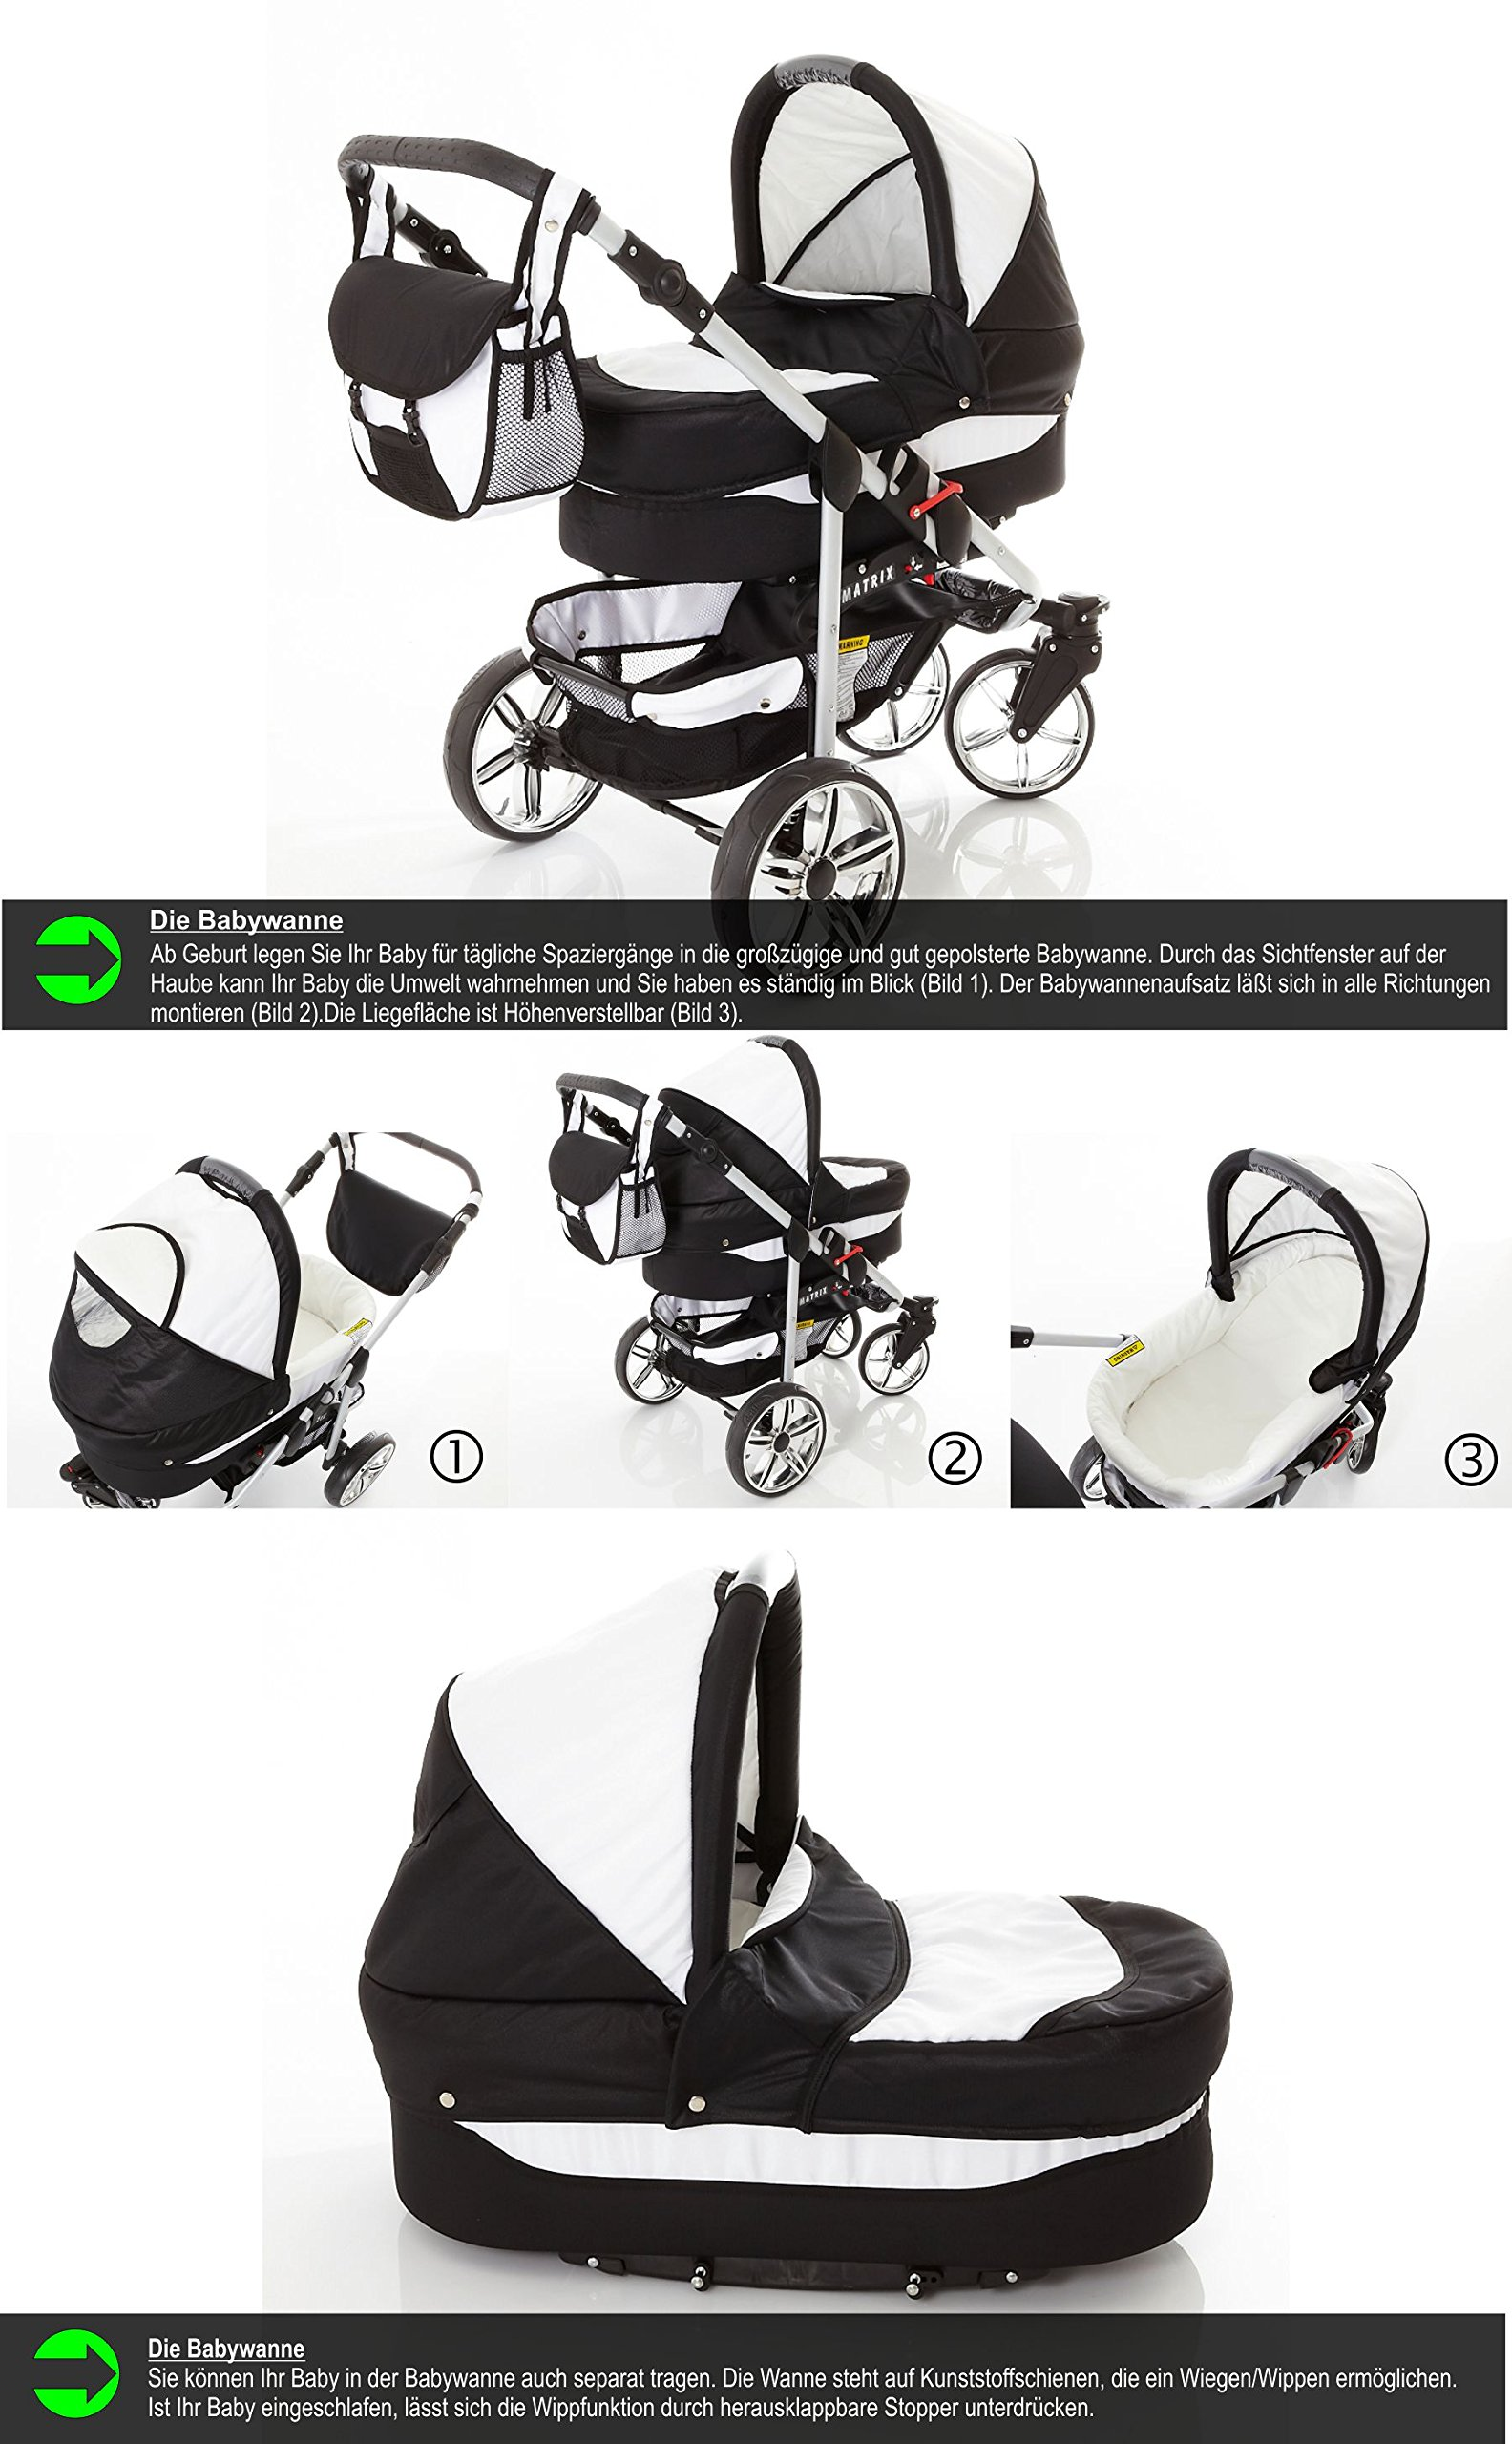 Chilly Kids Matrix II Pram & Pushchair Travel System (car seat & adapter, raincover, mosquito net, swivel wheels) 59 White & Leopard  Stroller with accessories all included 3 free items More information on www.youtube.com/Lux4Kids Sturdy steel construction, height-adjustable handlebars, adjustable hood hood, converts into a stroller and many pl Made in the EU (DIN EN1888/2005) 3